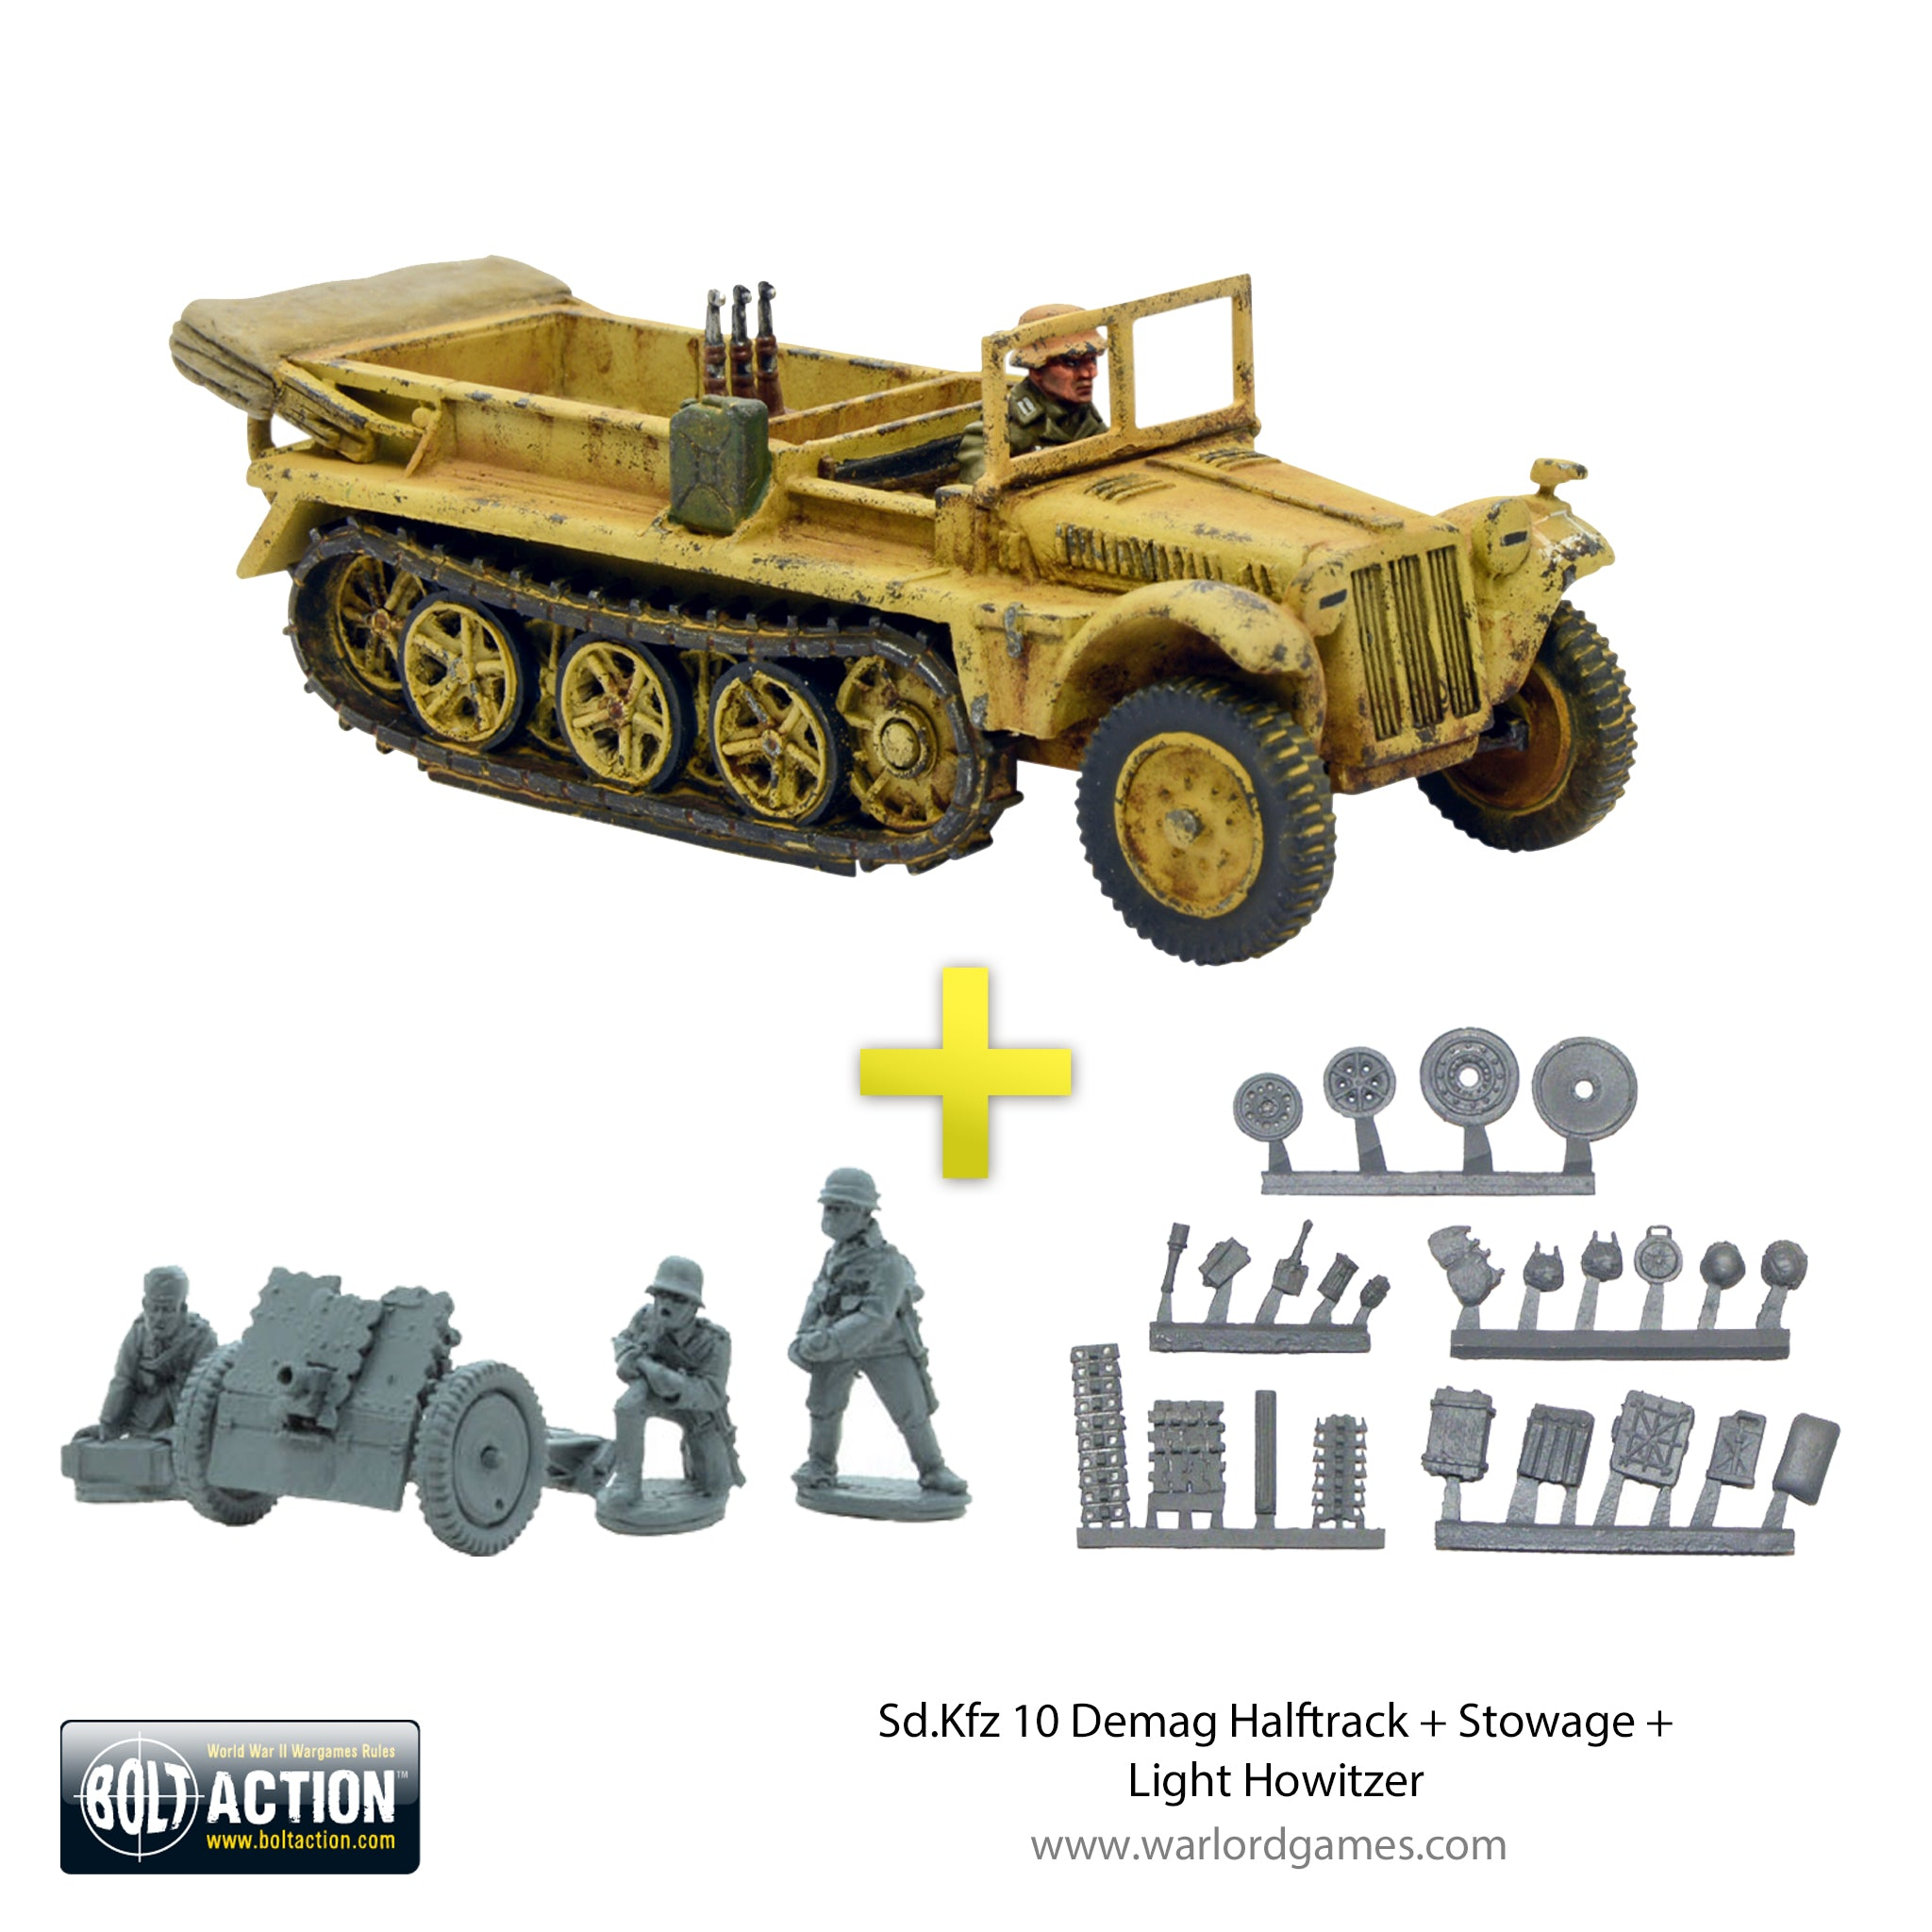 Bolt Action Stowage Light Howitzer Warlord Gam Sd.Kfz 10 Demag Halftrack